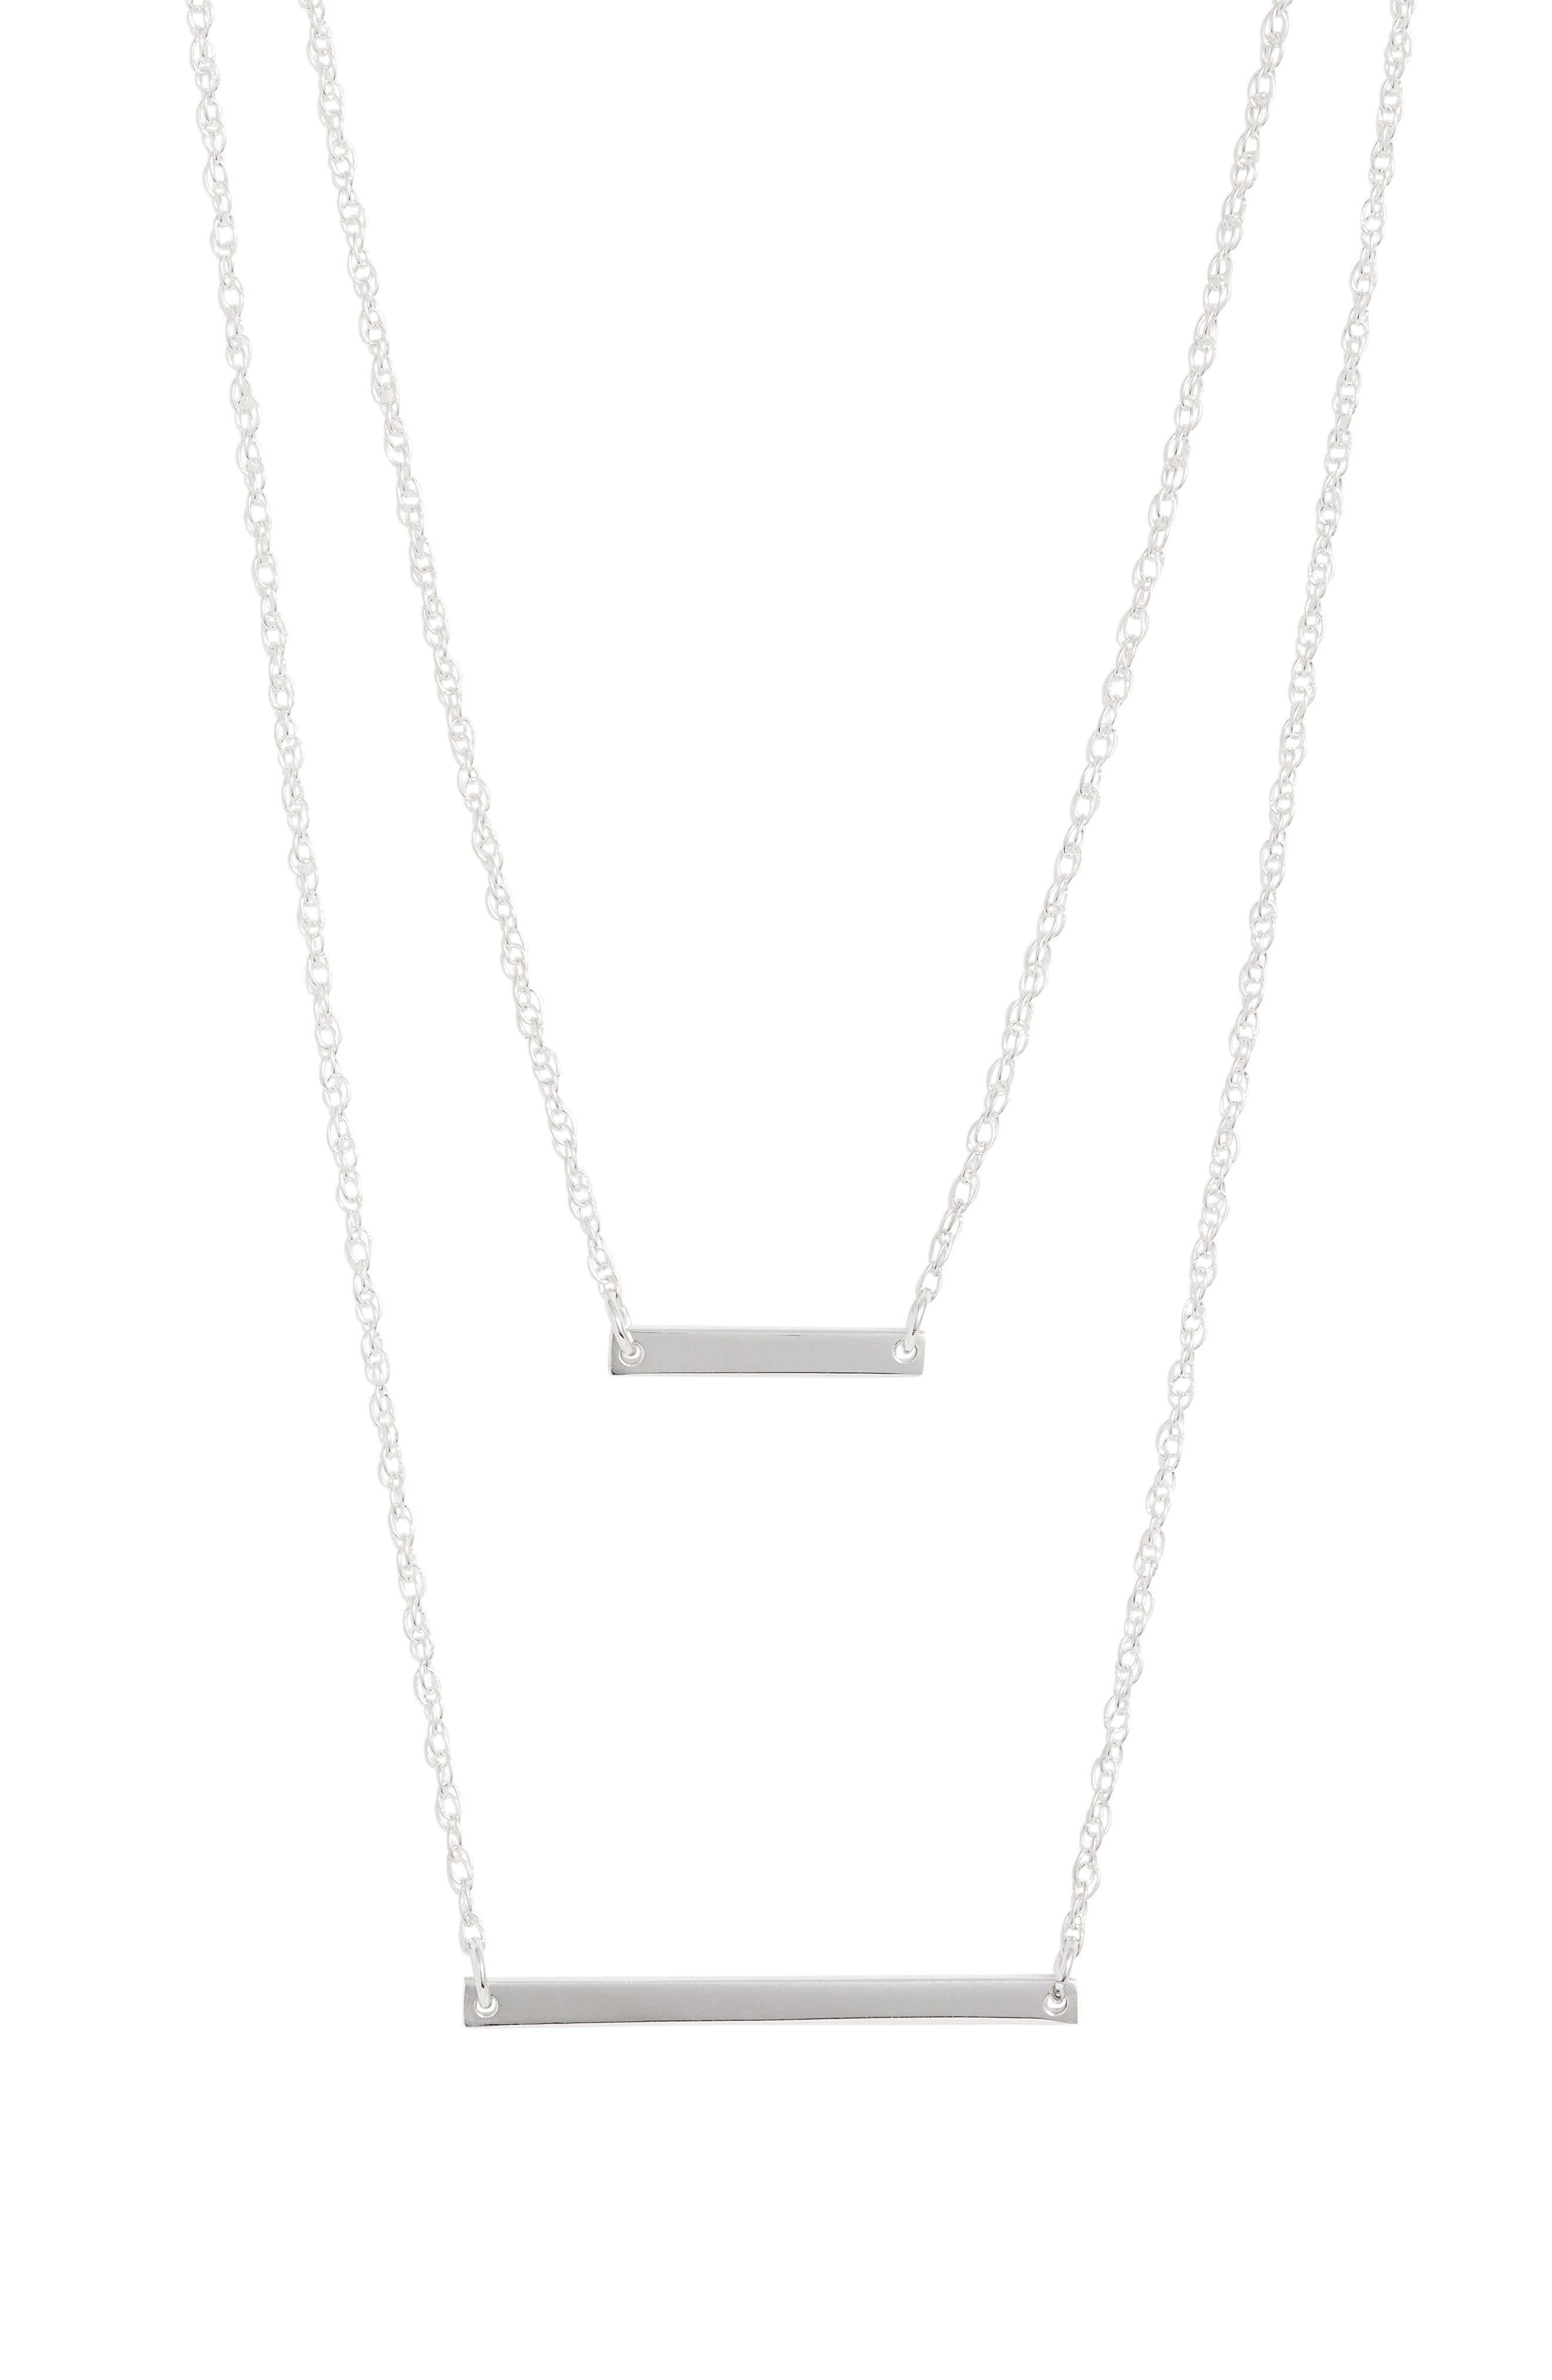 Cynthia Layered Pendant Necklace,                         Main,                         color, SILVER